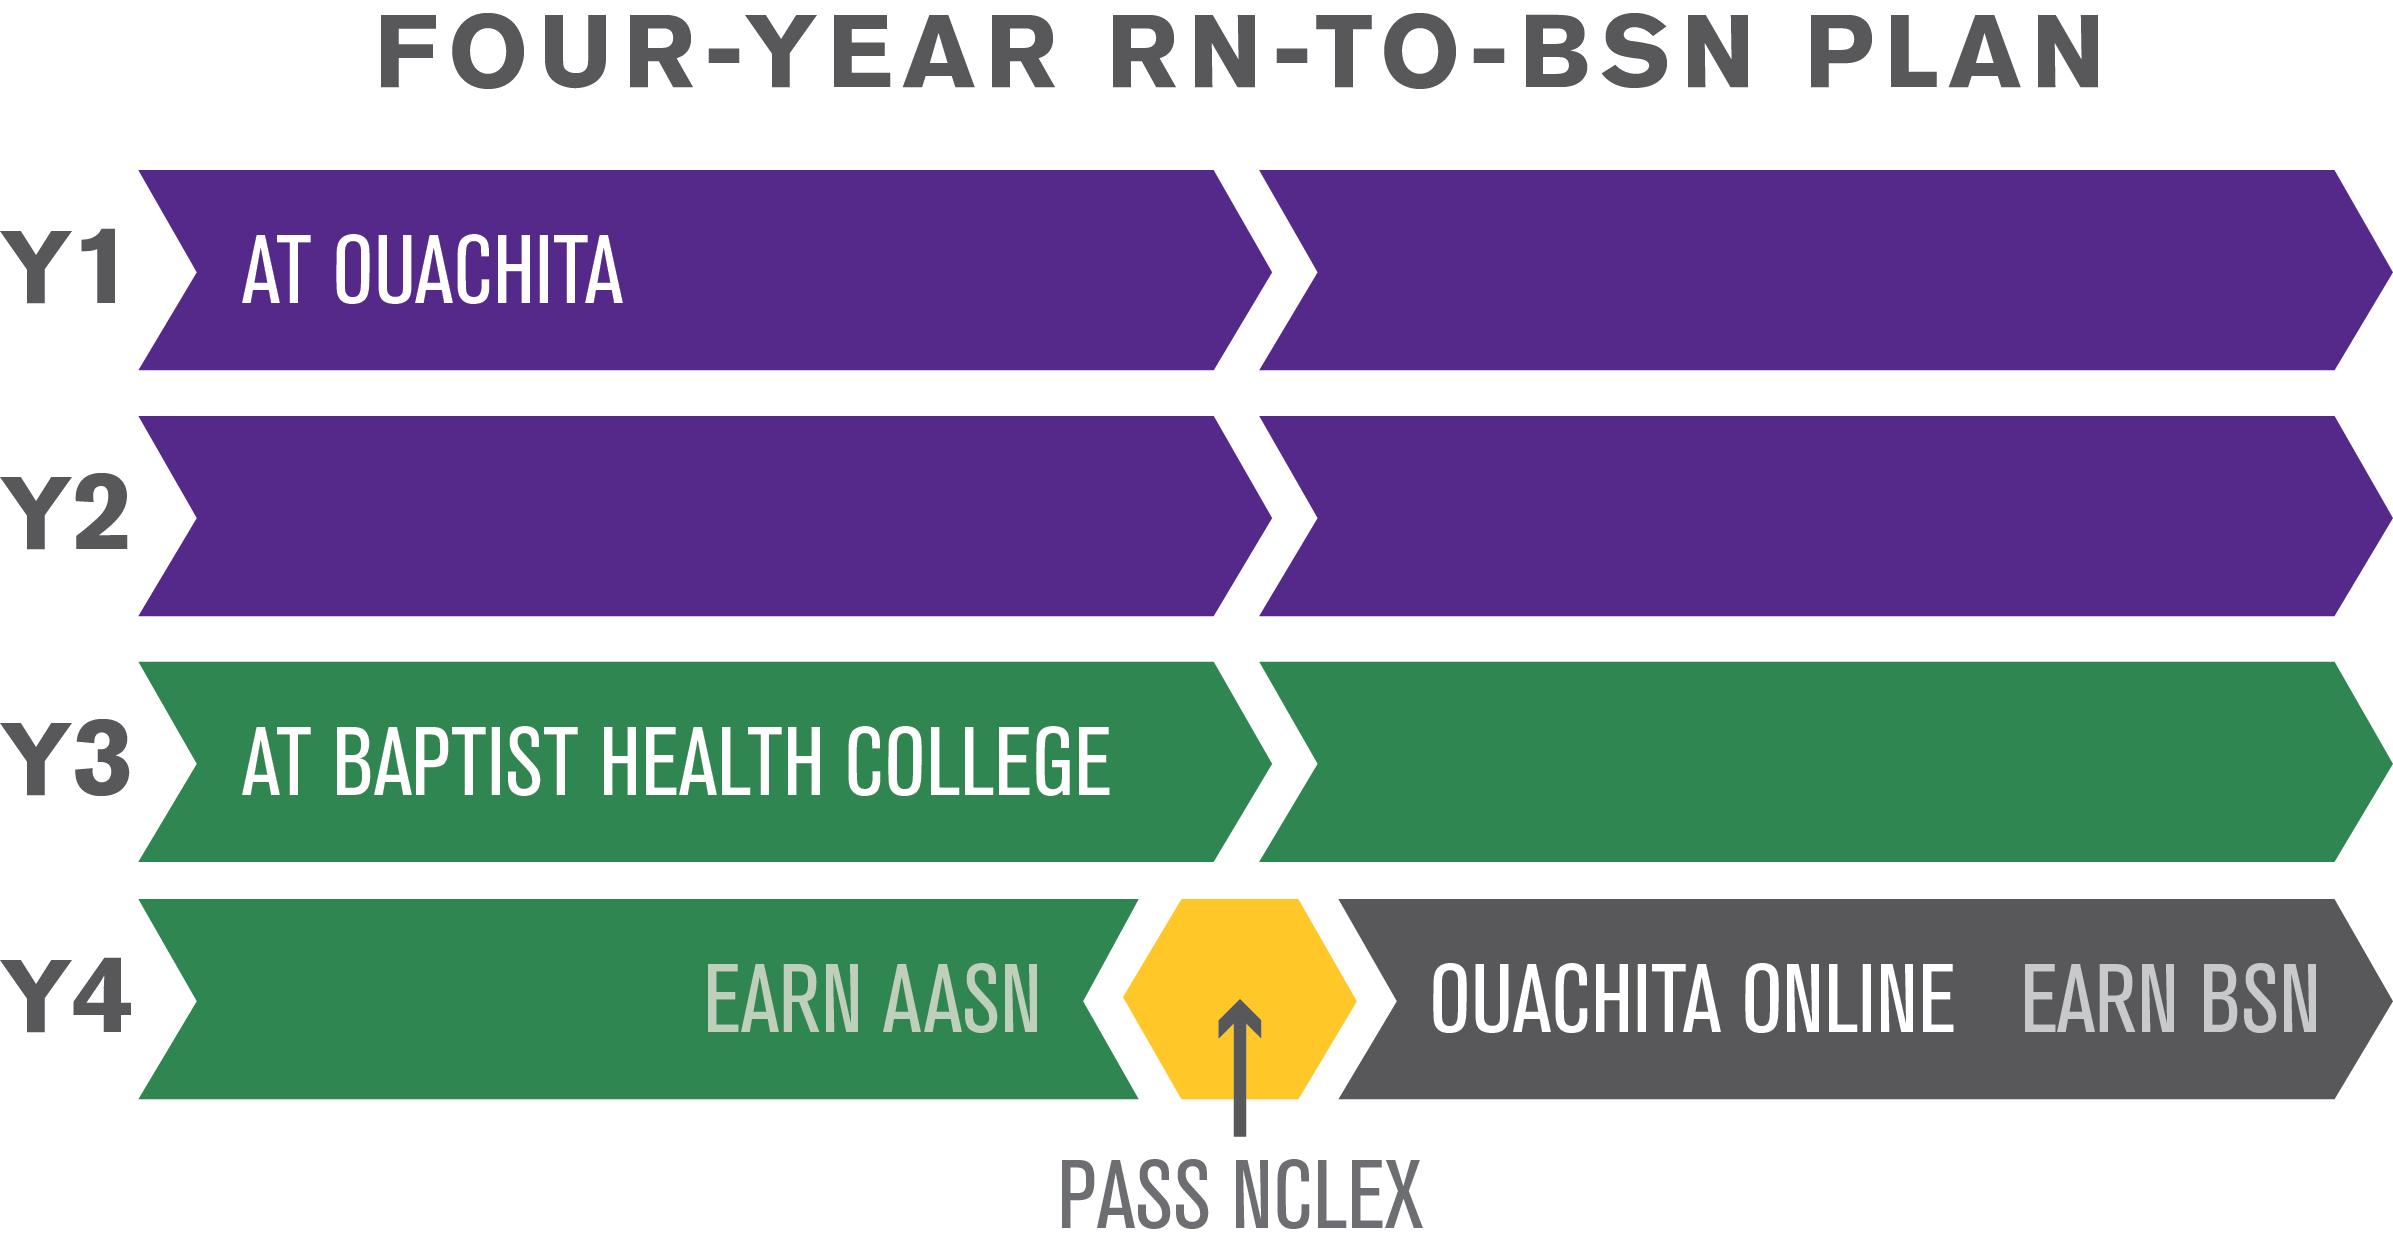 RN to BSN year to year chart